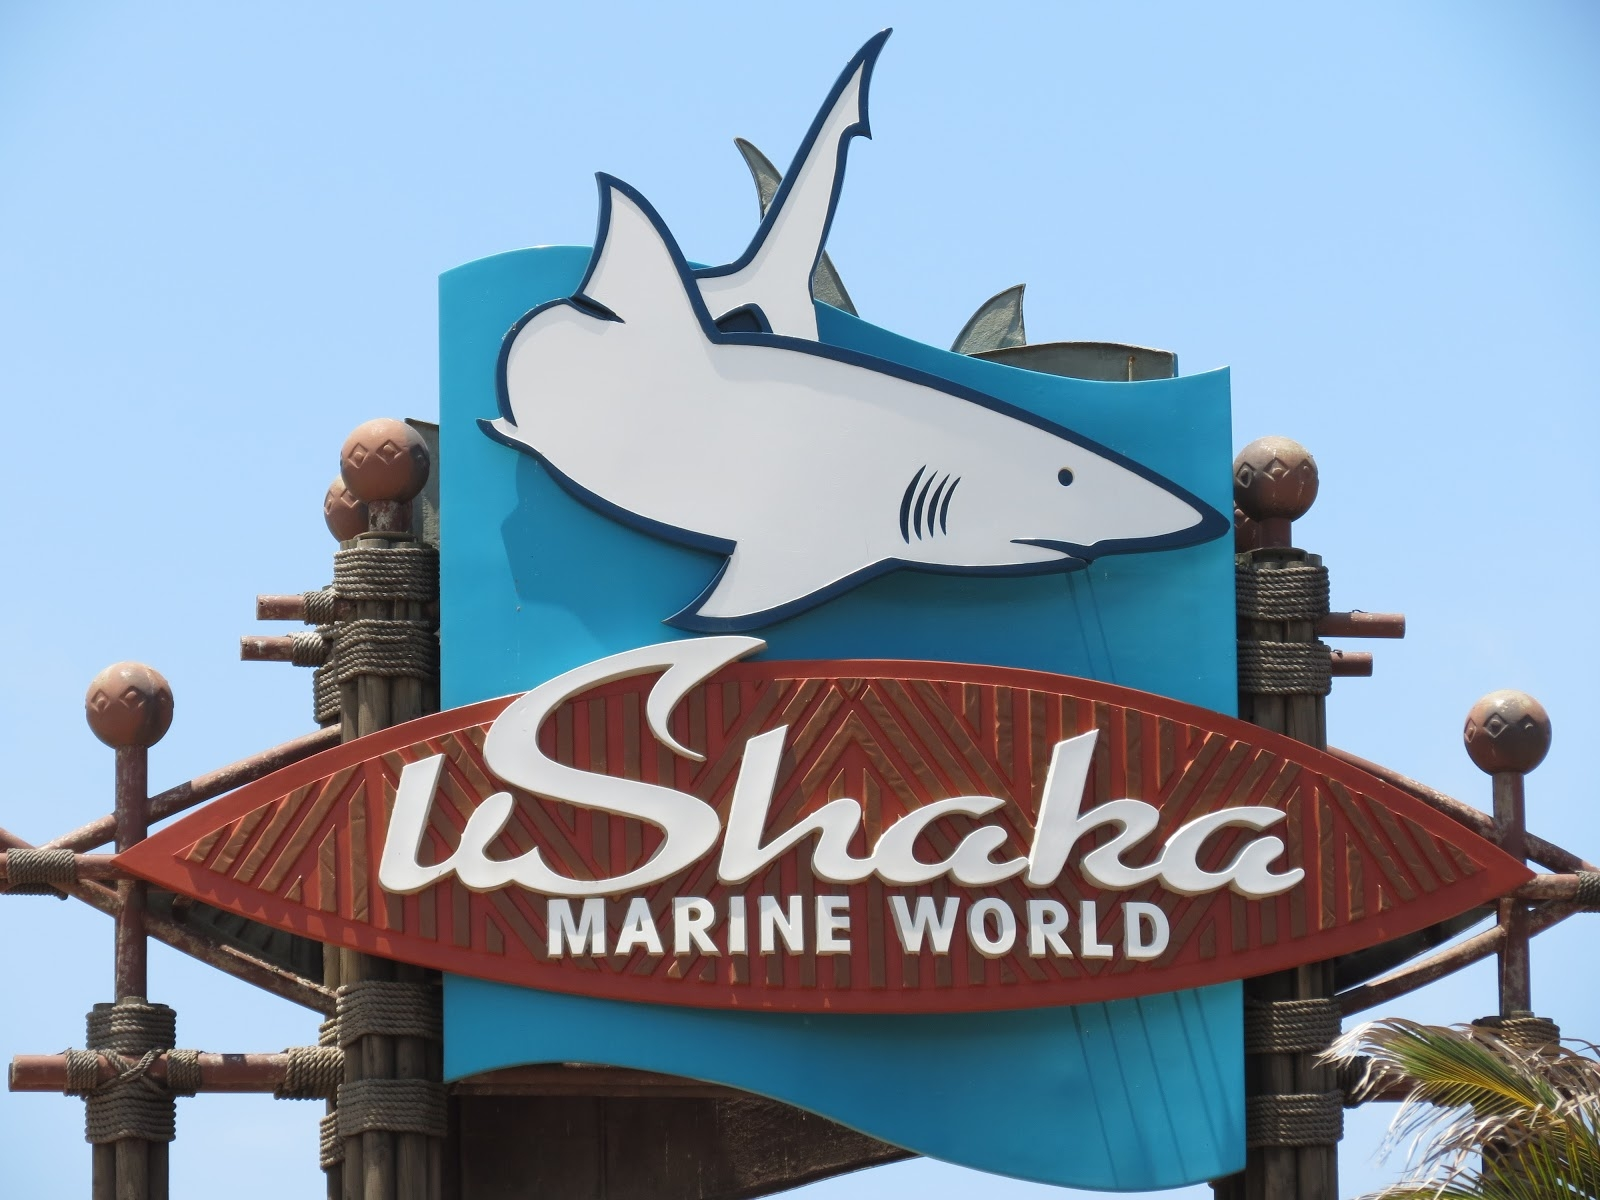 Ushaka Marine World - Tourist Attractions & Tour Packages in Durban